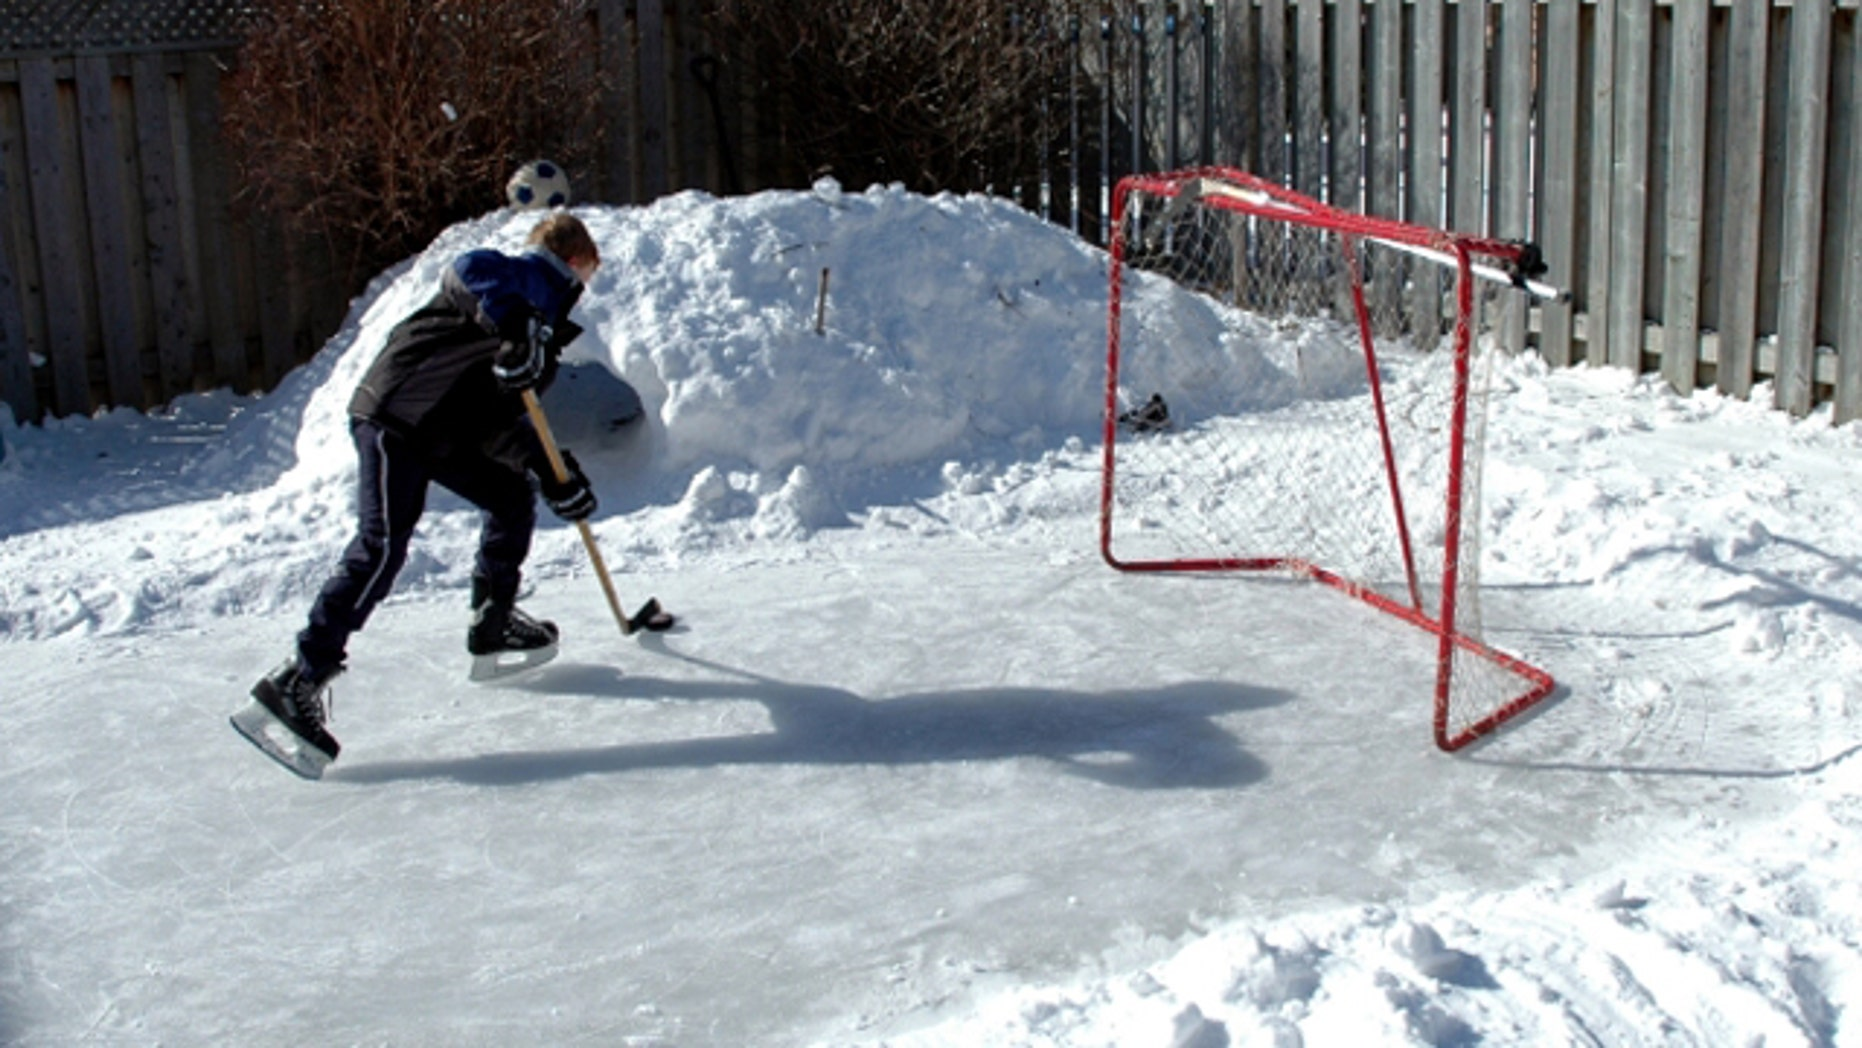 Family weekend: how to make a skating rink in the yard